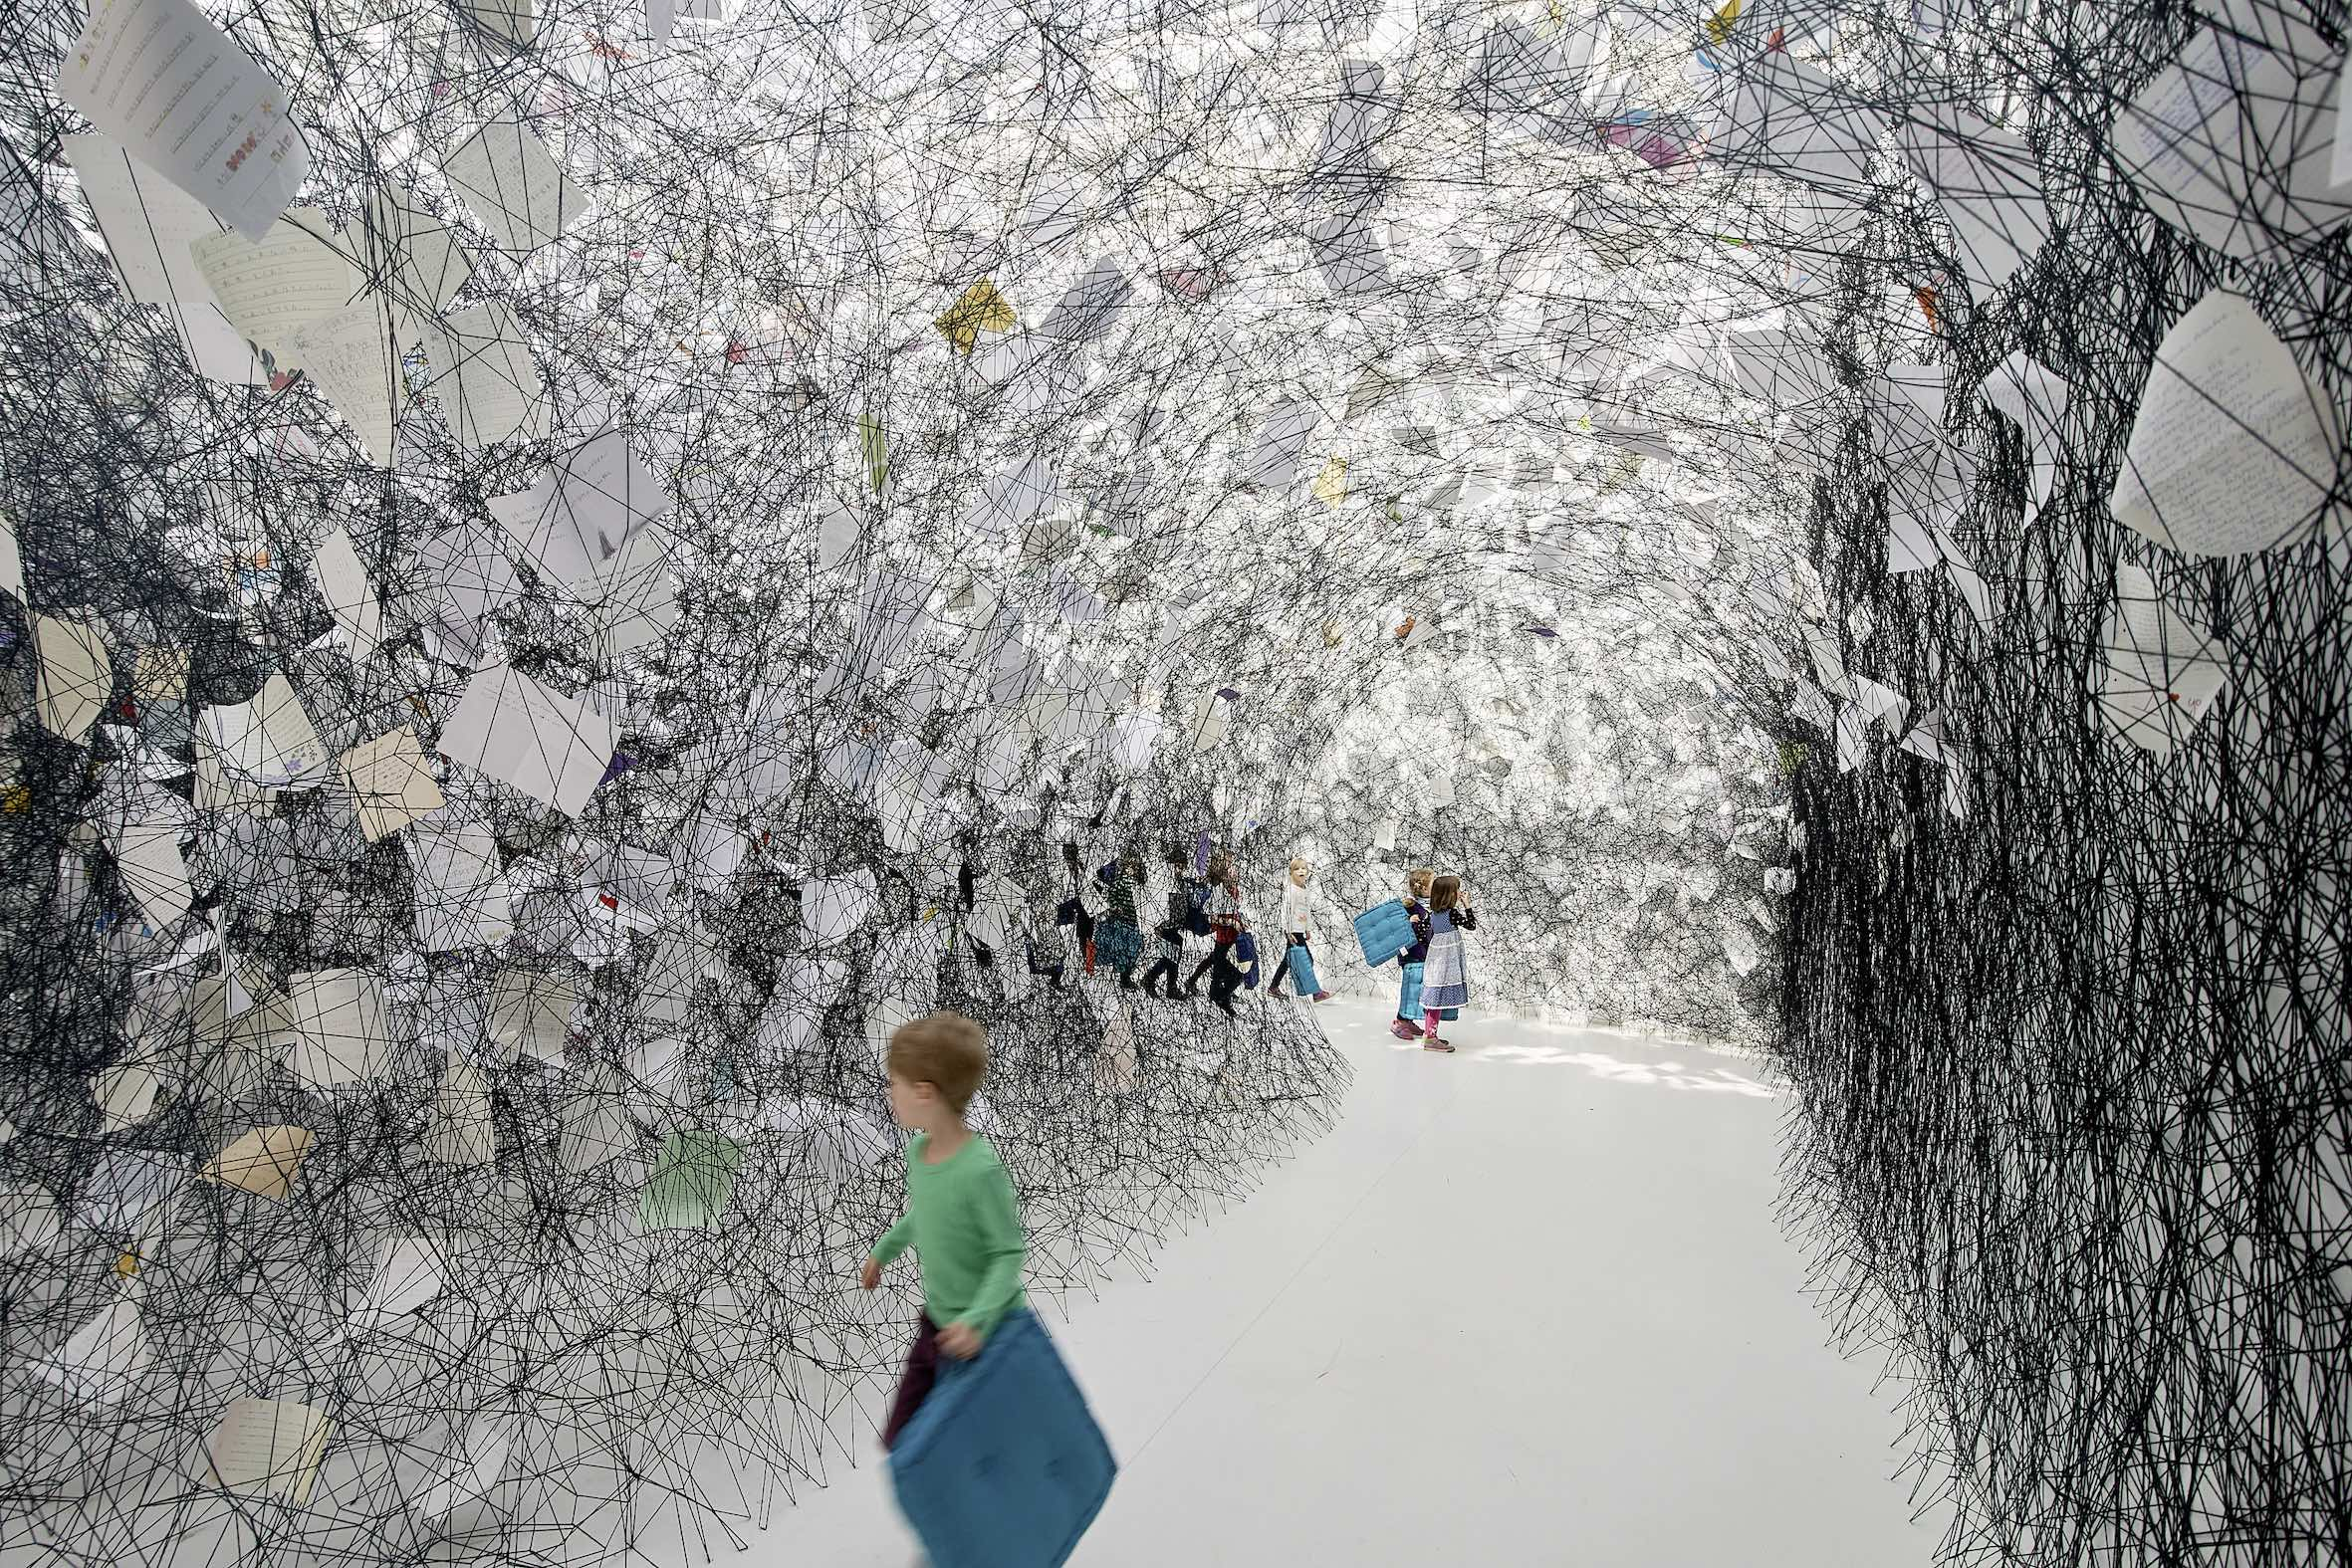 Chiharu Shiota, Letters of Thanks2017Installation: thank-you letters, black woolKunsthalle Rostock, Germany Photo by Thomas Häntzschel (Fotoagentur Nordlicht)Rostock Copyright VG Bild-Kunst, Bonn, 2019 and the artist